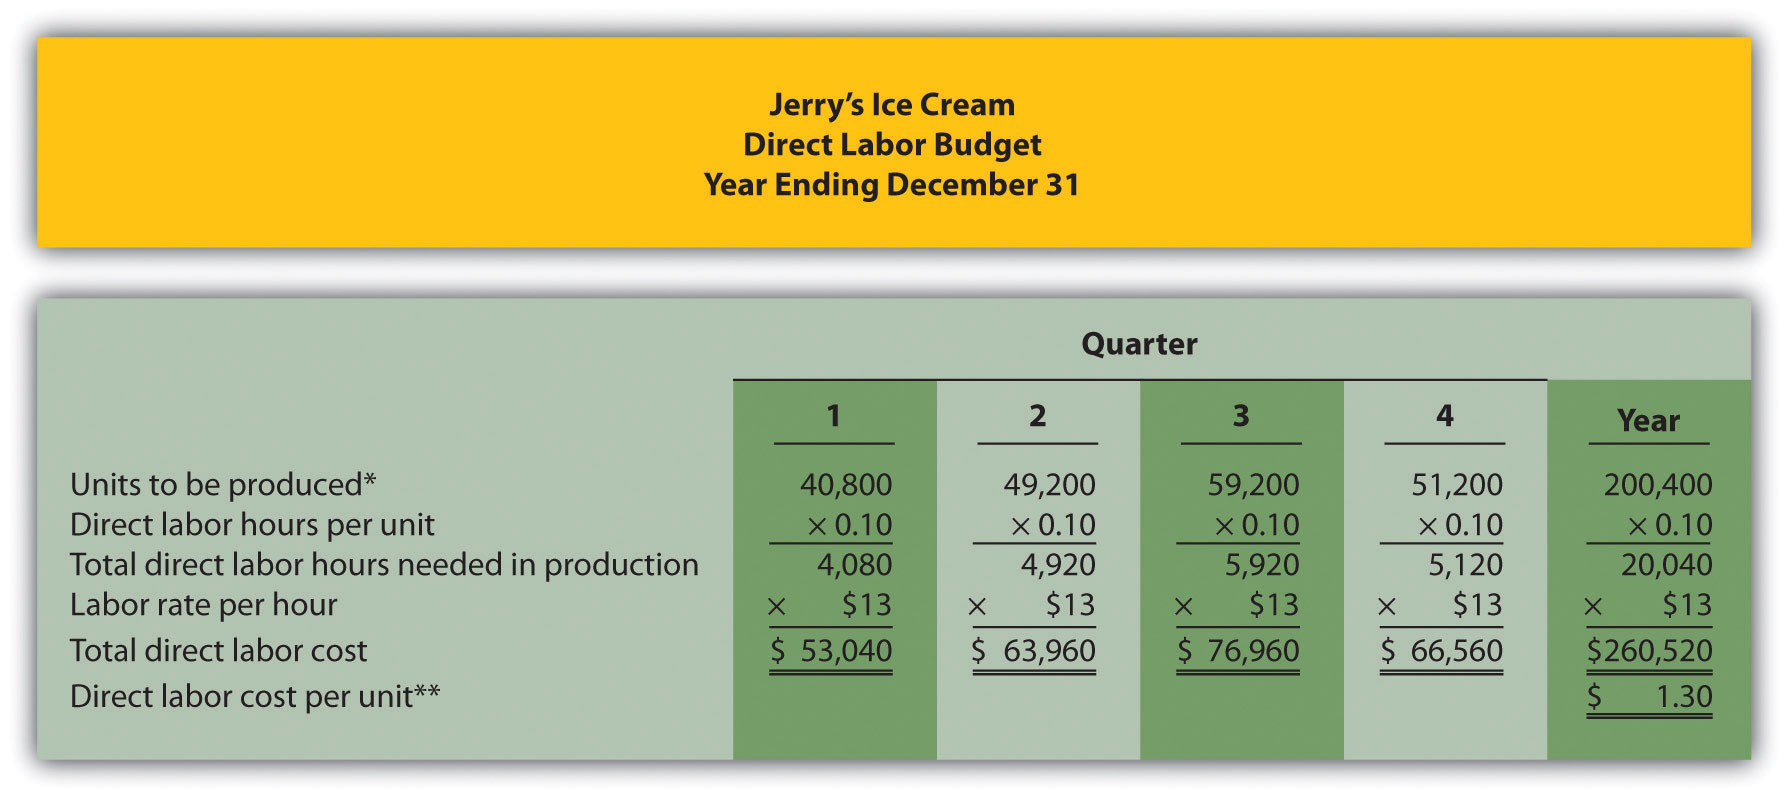 Figure 9.6 Direct Labor Budget for Jerry's Ice Cream